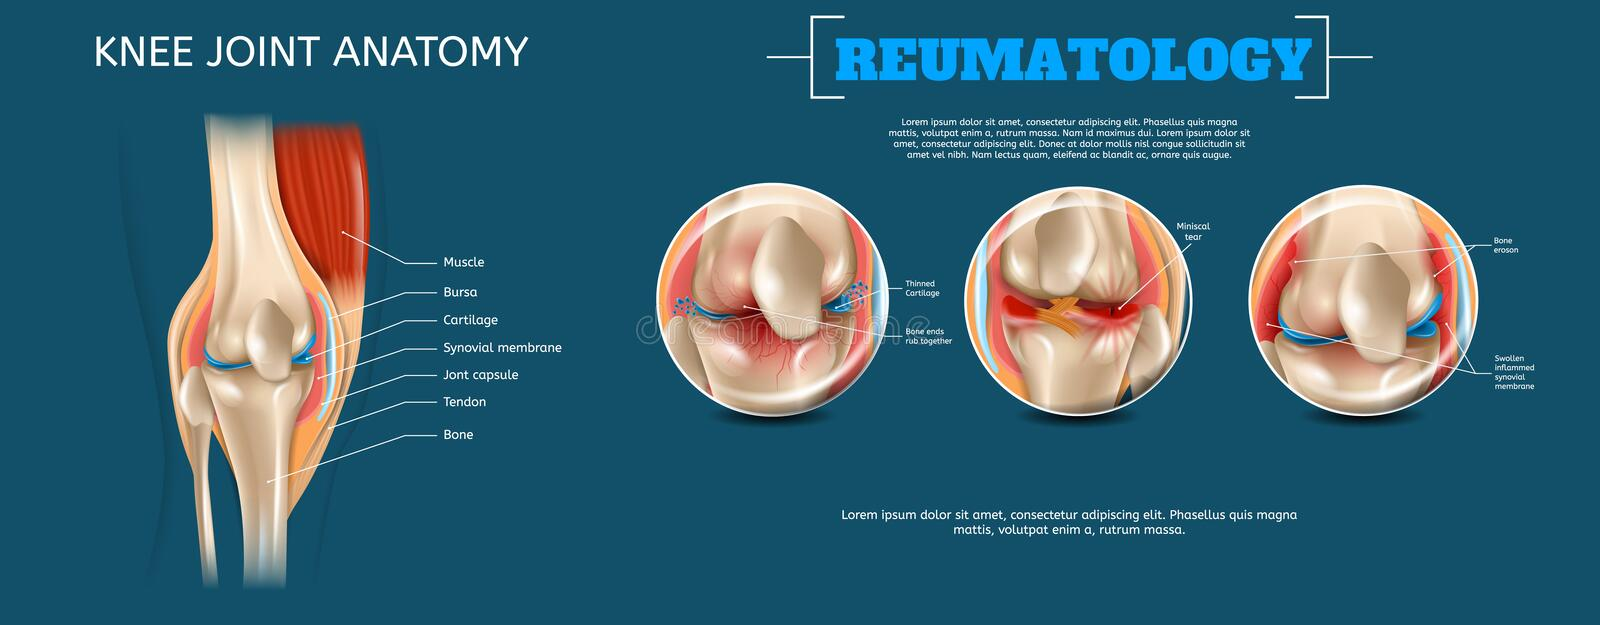 Realistic Banner Illustration Knee Joint Anatomy. 3d Vector Reumatology Image Constituent Elements Structure Human Knee Joint Muscle, Bursa, Cartilage stock illustration